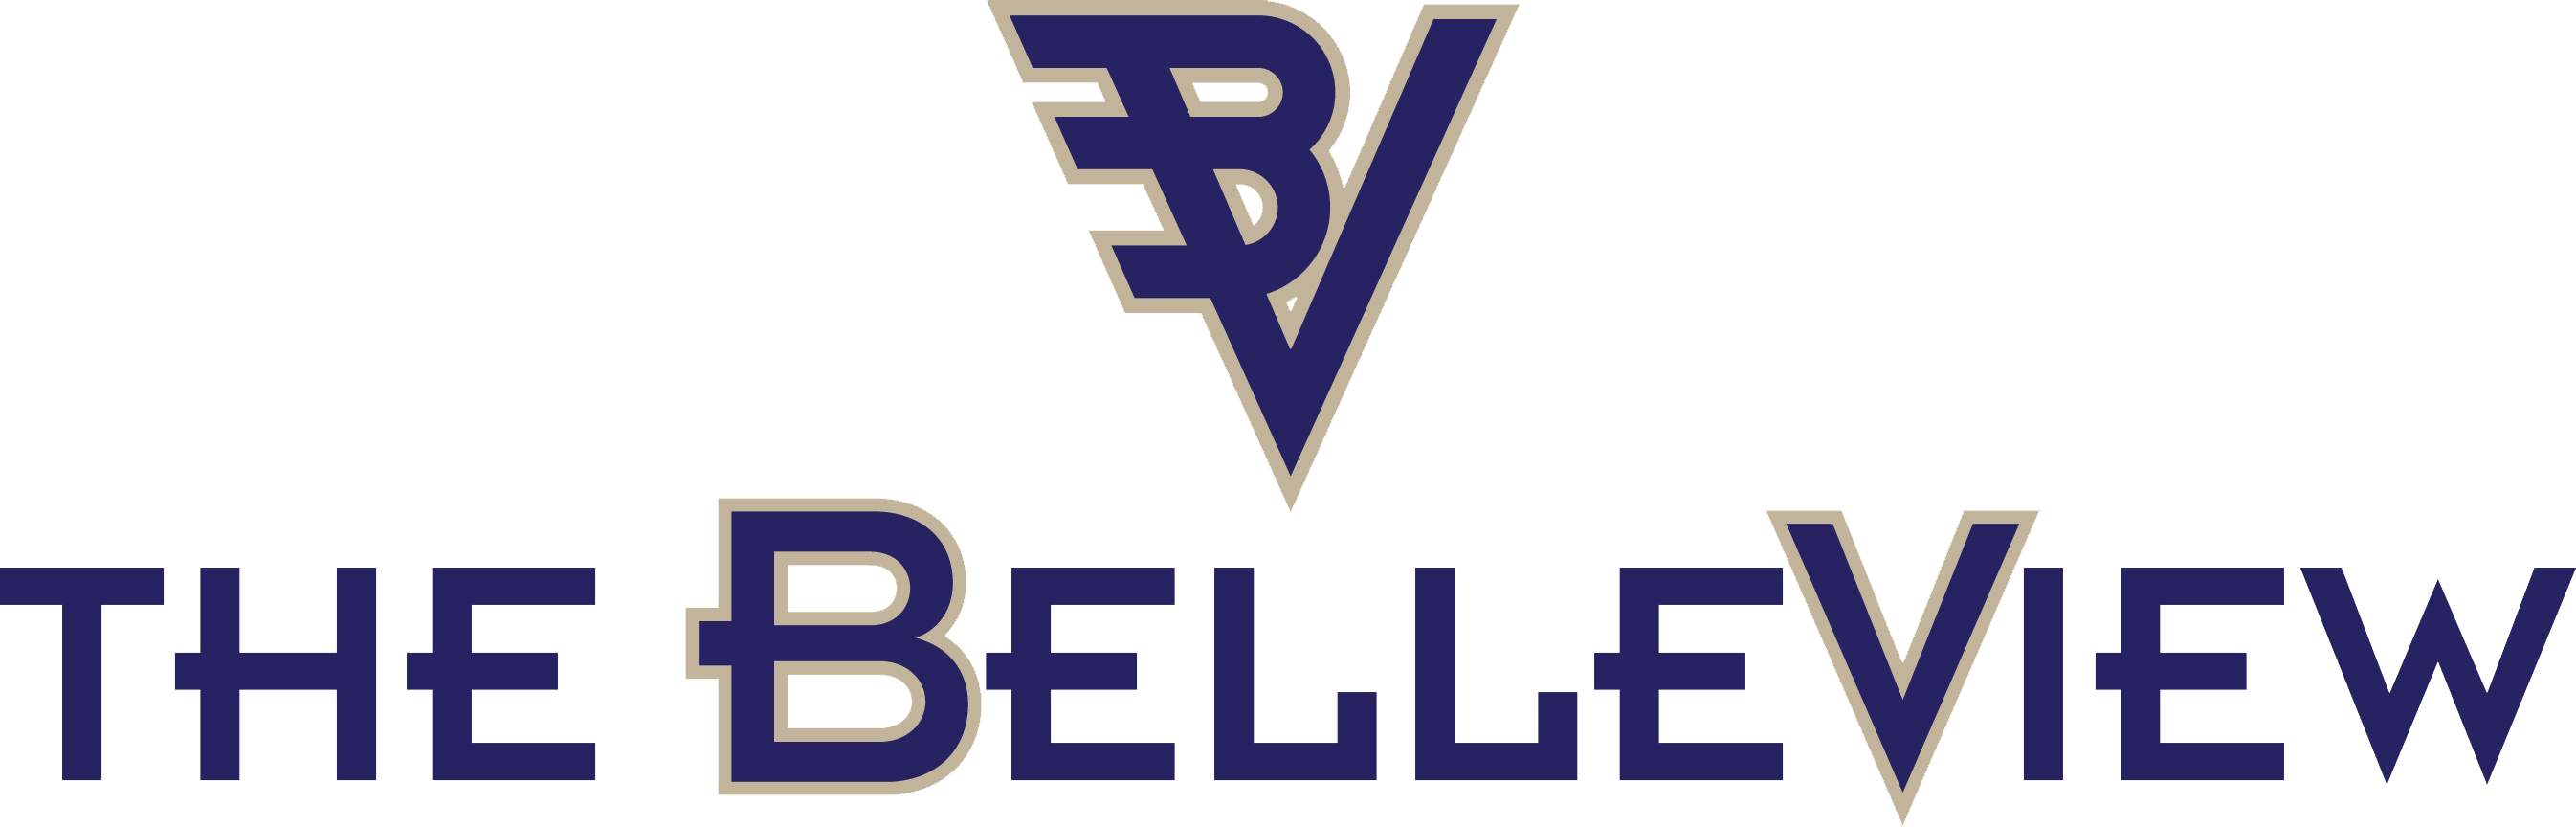 The Belleview Logo